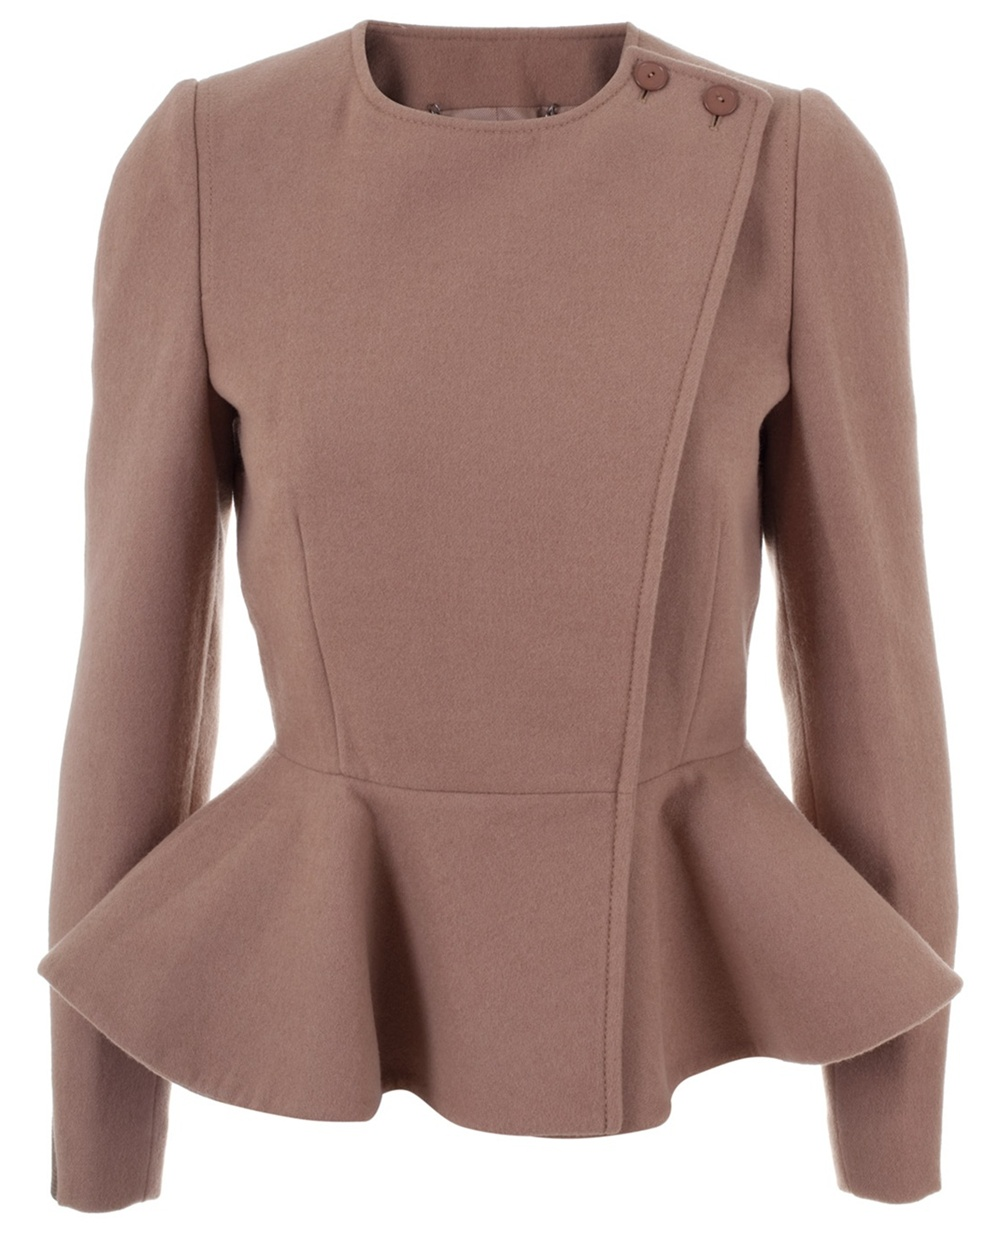 quirk trend peplum tops jackets fashion quirk